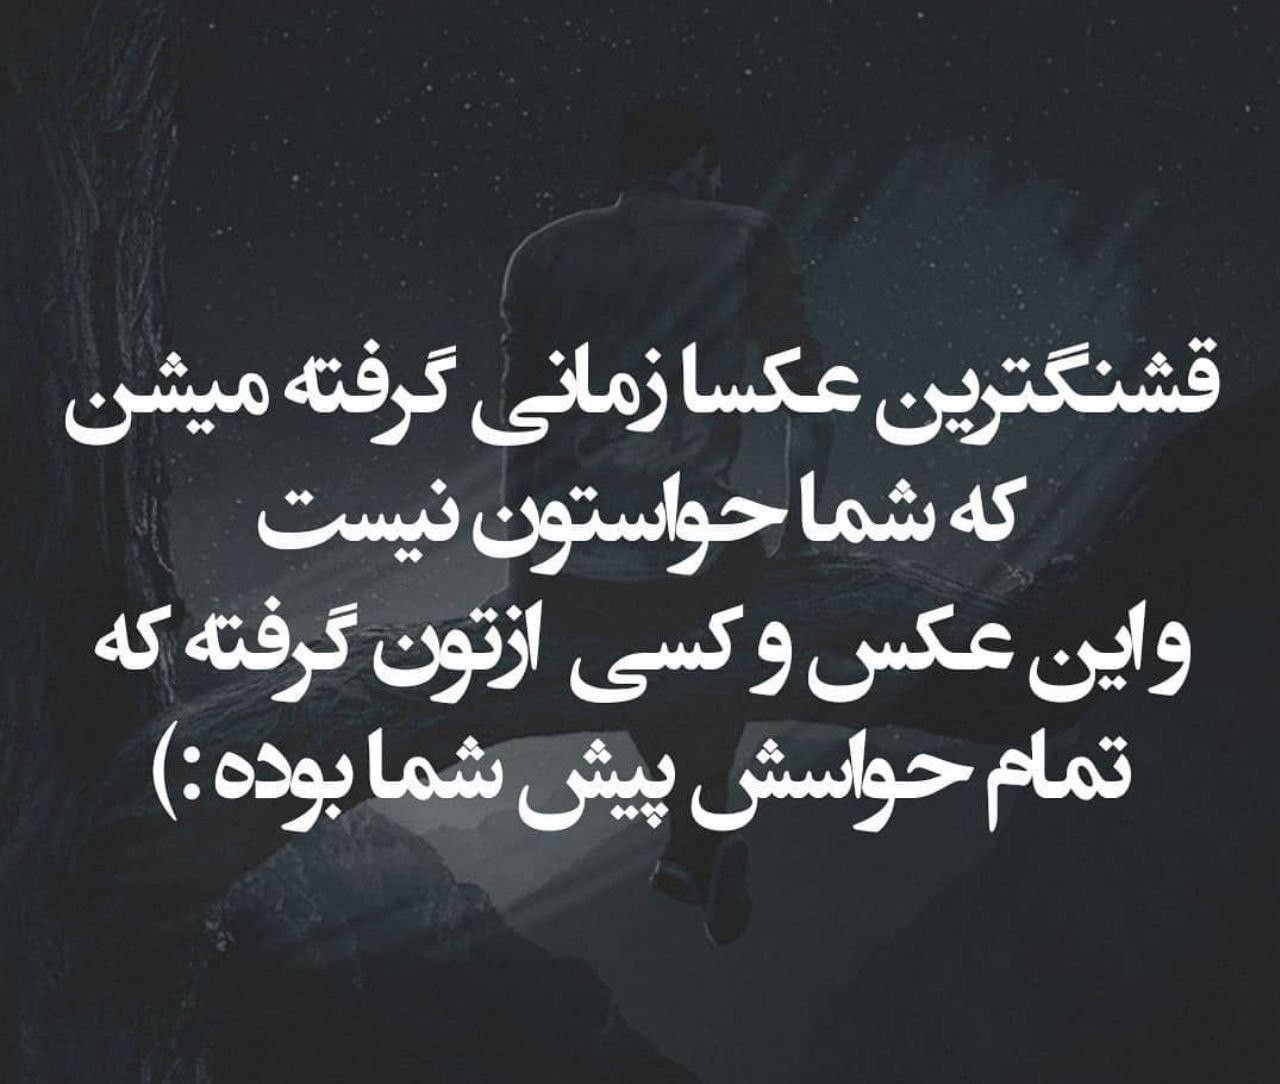 Pin By Aria On Teht Text Pictures Persian Poem Text